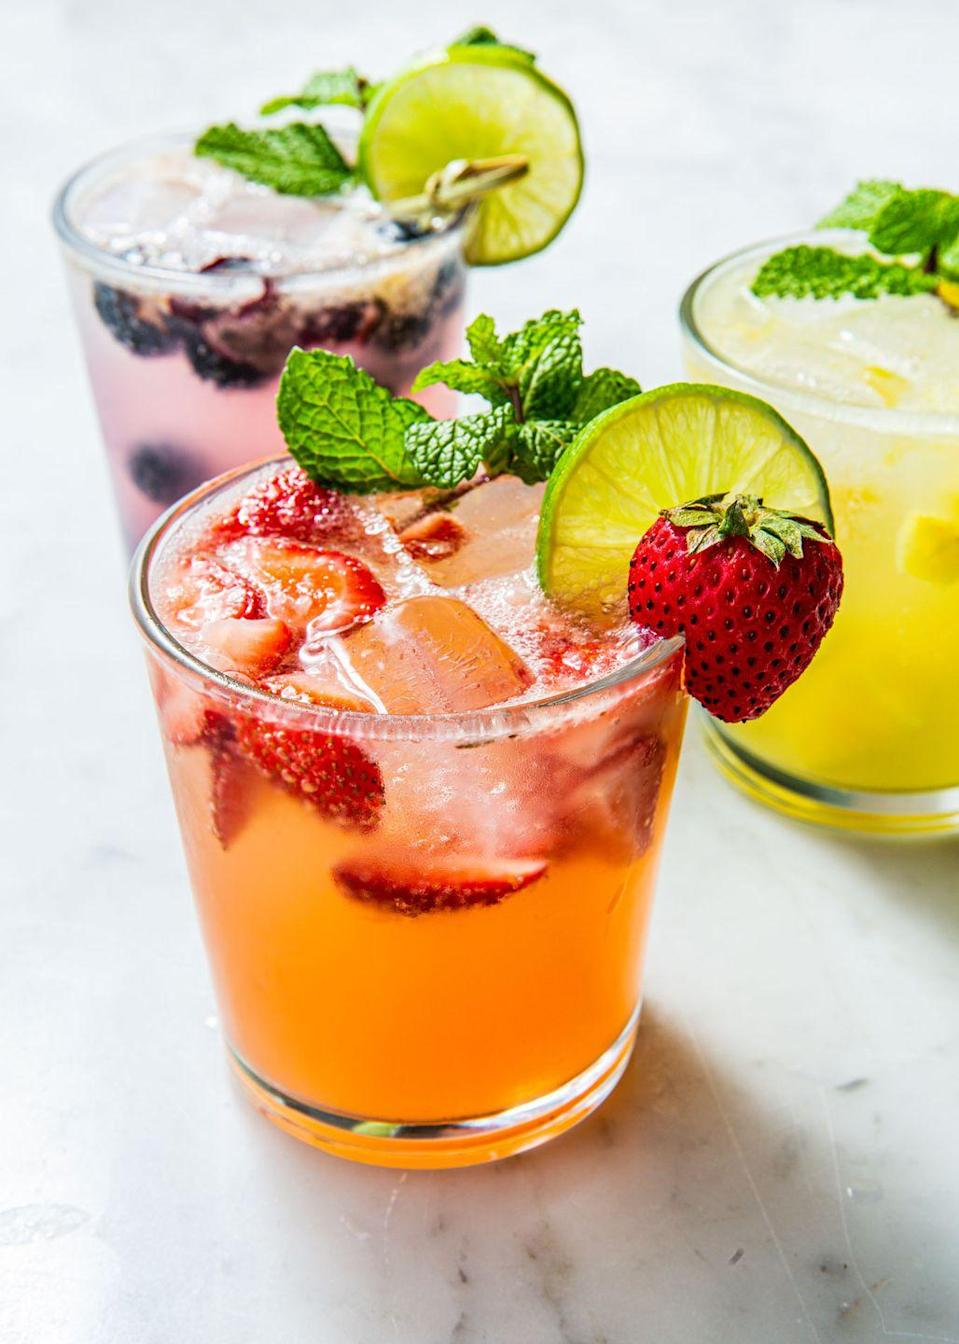 """<p>You're going to want to make these every weekend (and weekday, let's be honest).</p><p>Get the recipe from <a href=""""https://www.delish.com/cooking/recipes/a53357/blueberry-pineapple-strawberry-mojito-recipes/"""" rel=""""nofollow noopener"""" target=""""_blank"""" data-ylk=""""slk:Delish"""" class=""""link rapid-noclick-resp"""">Delish</a>.</p>"""